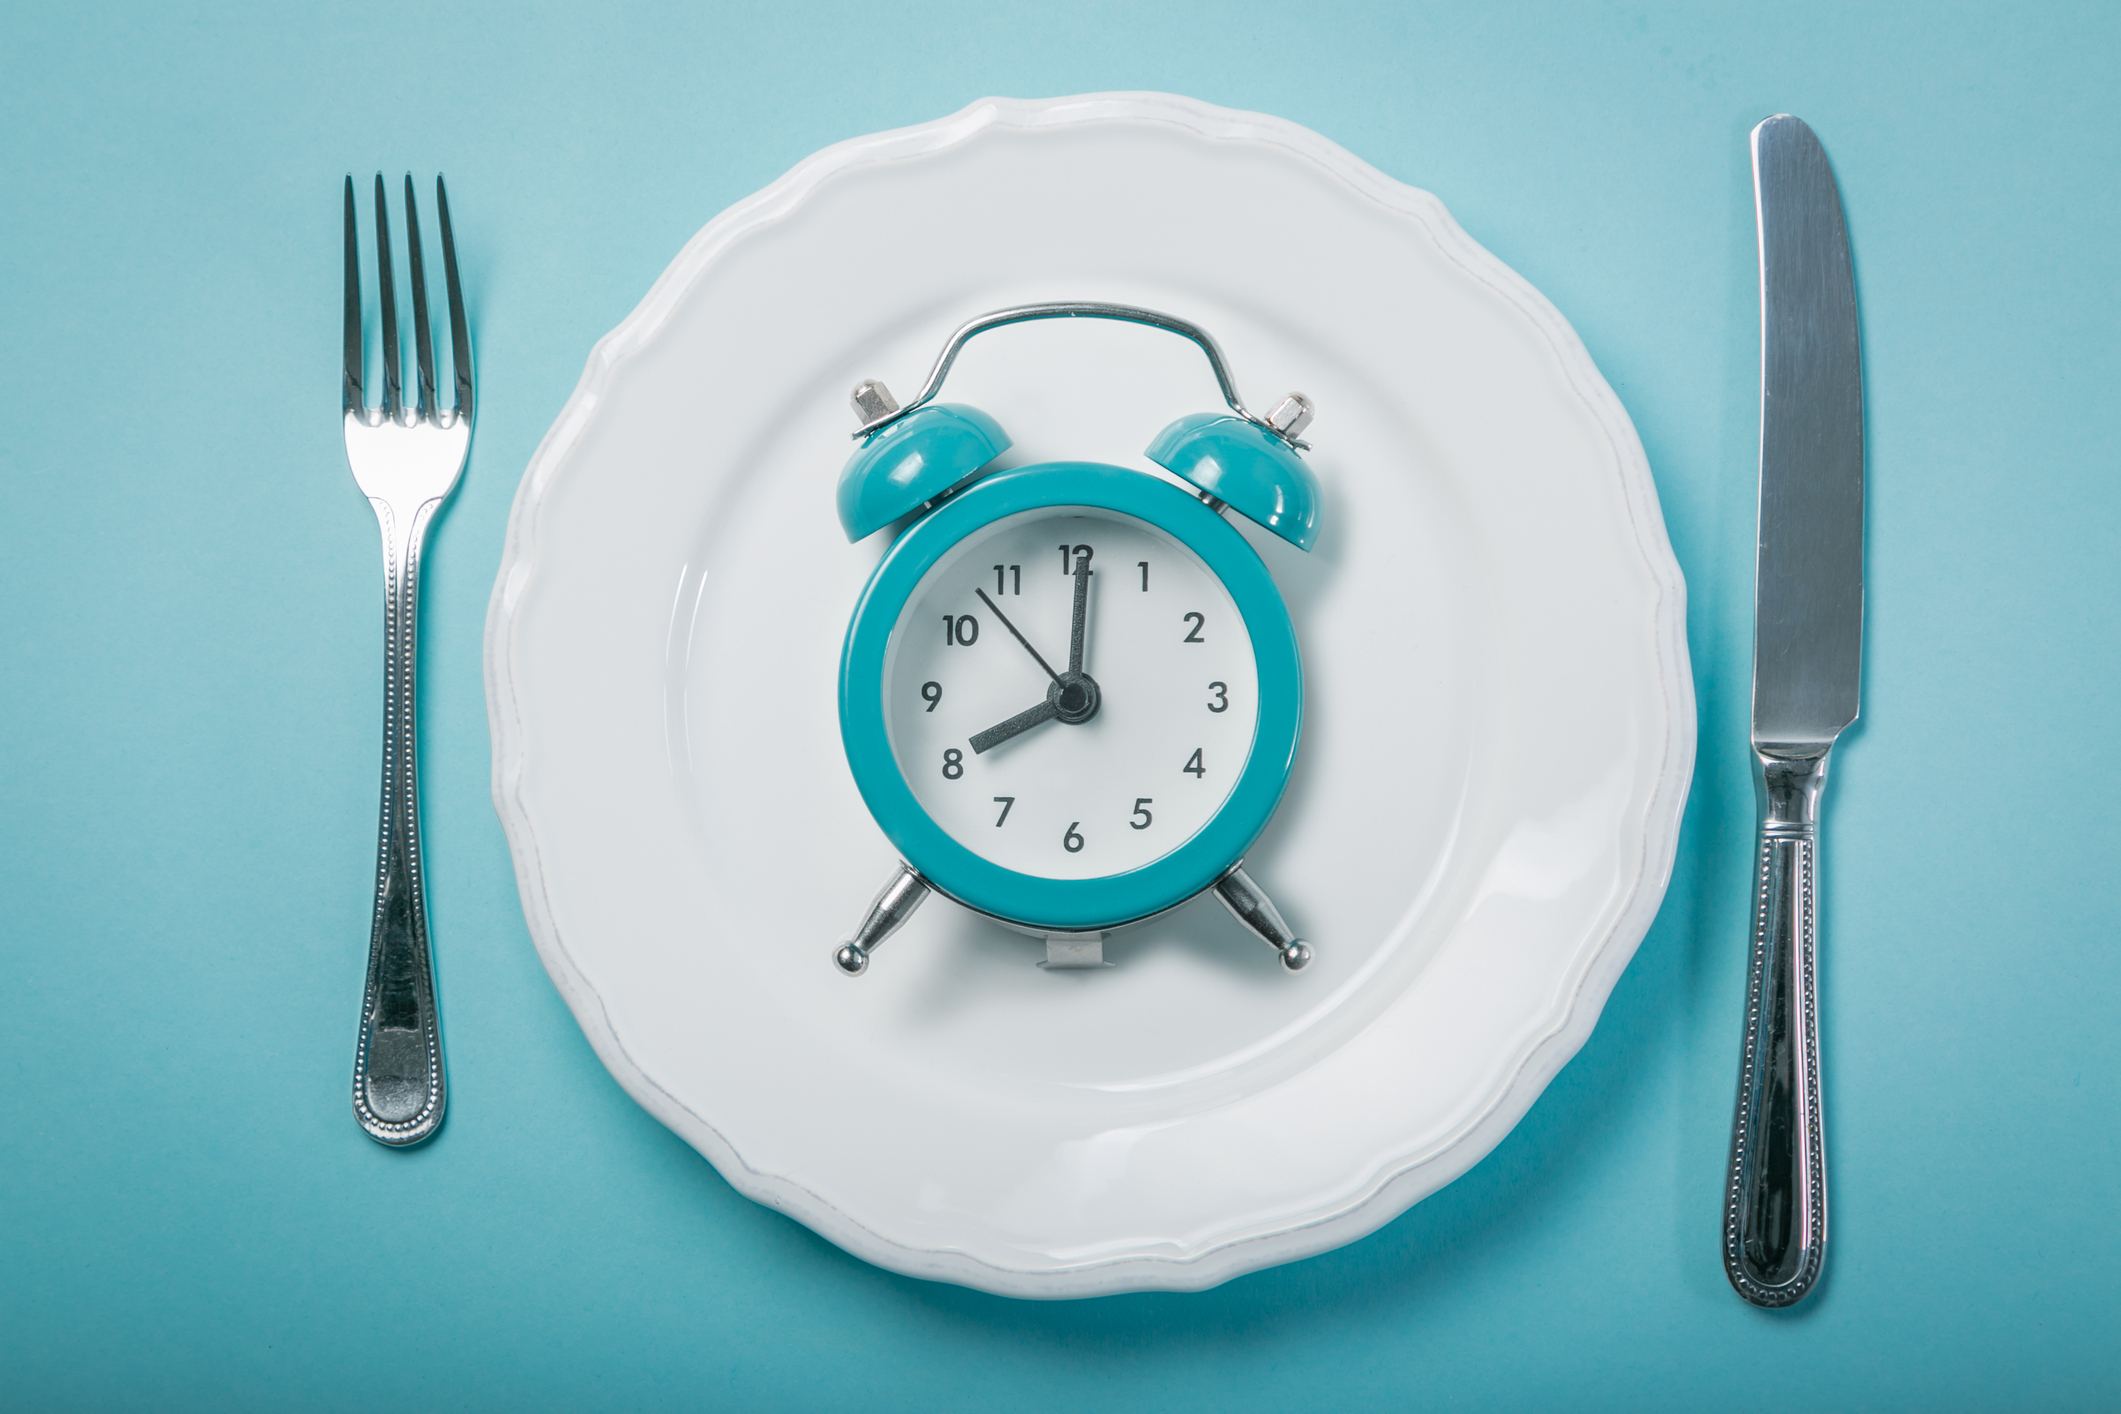 Intermittent Fasting Surprising Update Harvard Health Blog Harvard Health Publishing